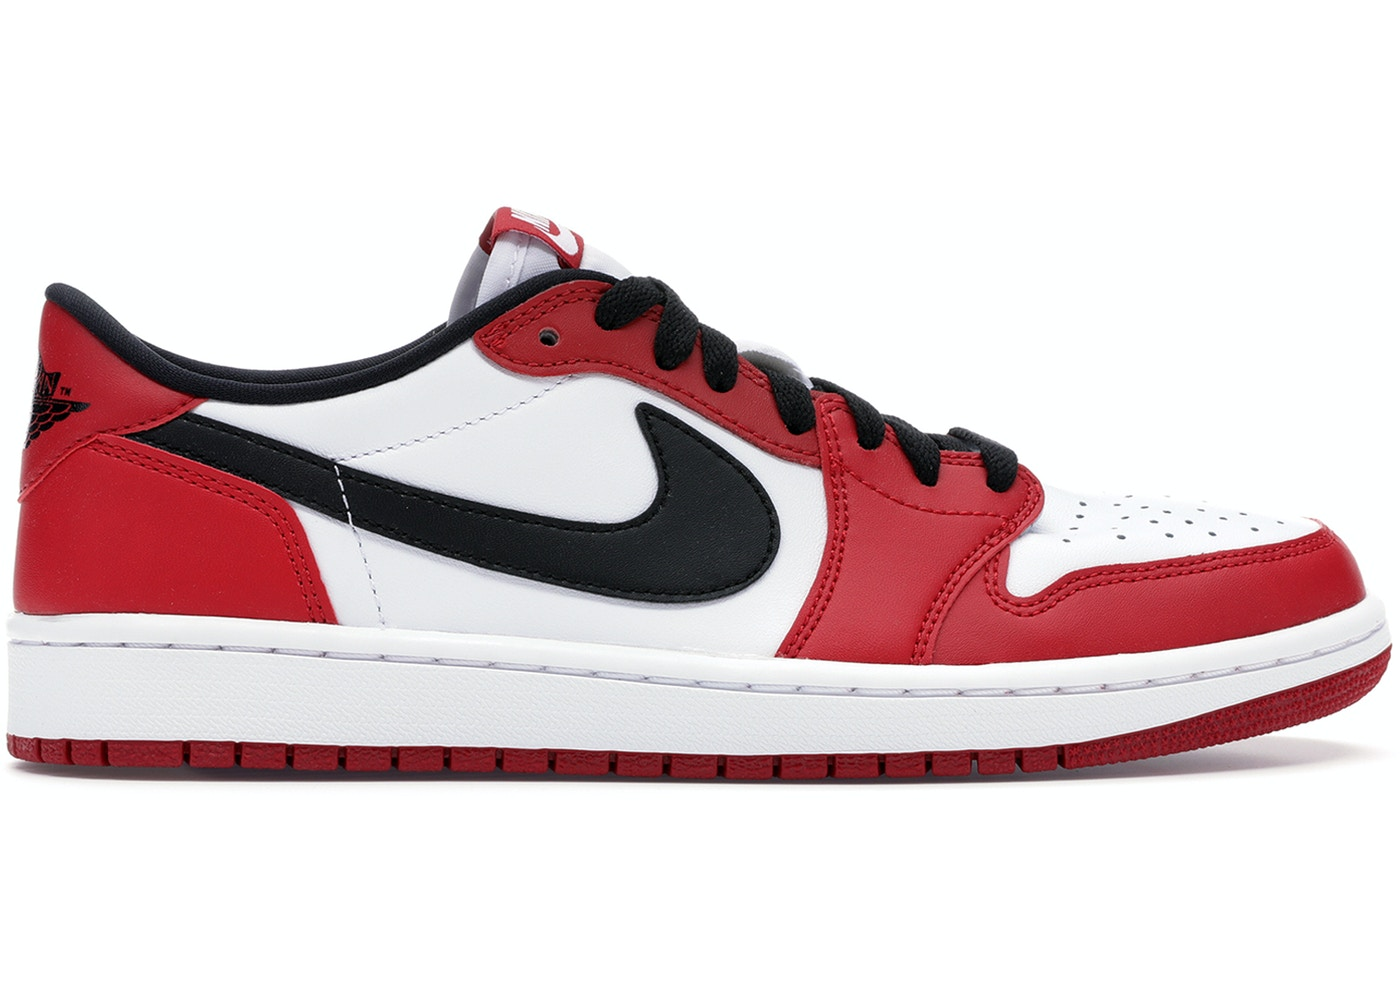 new concept d9597 f2856 Jordan 1 Retro Low Chicago (2016) - 705329-600